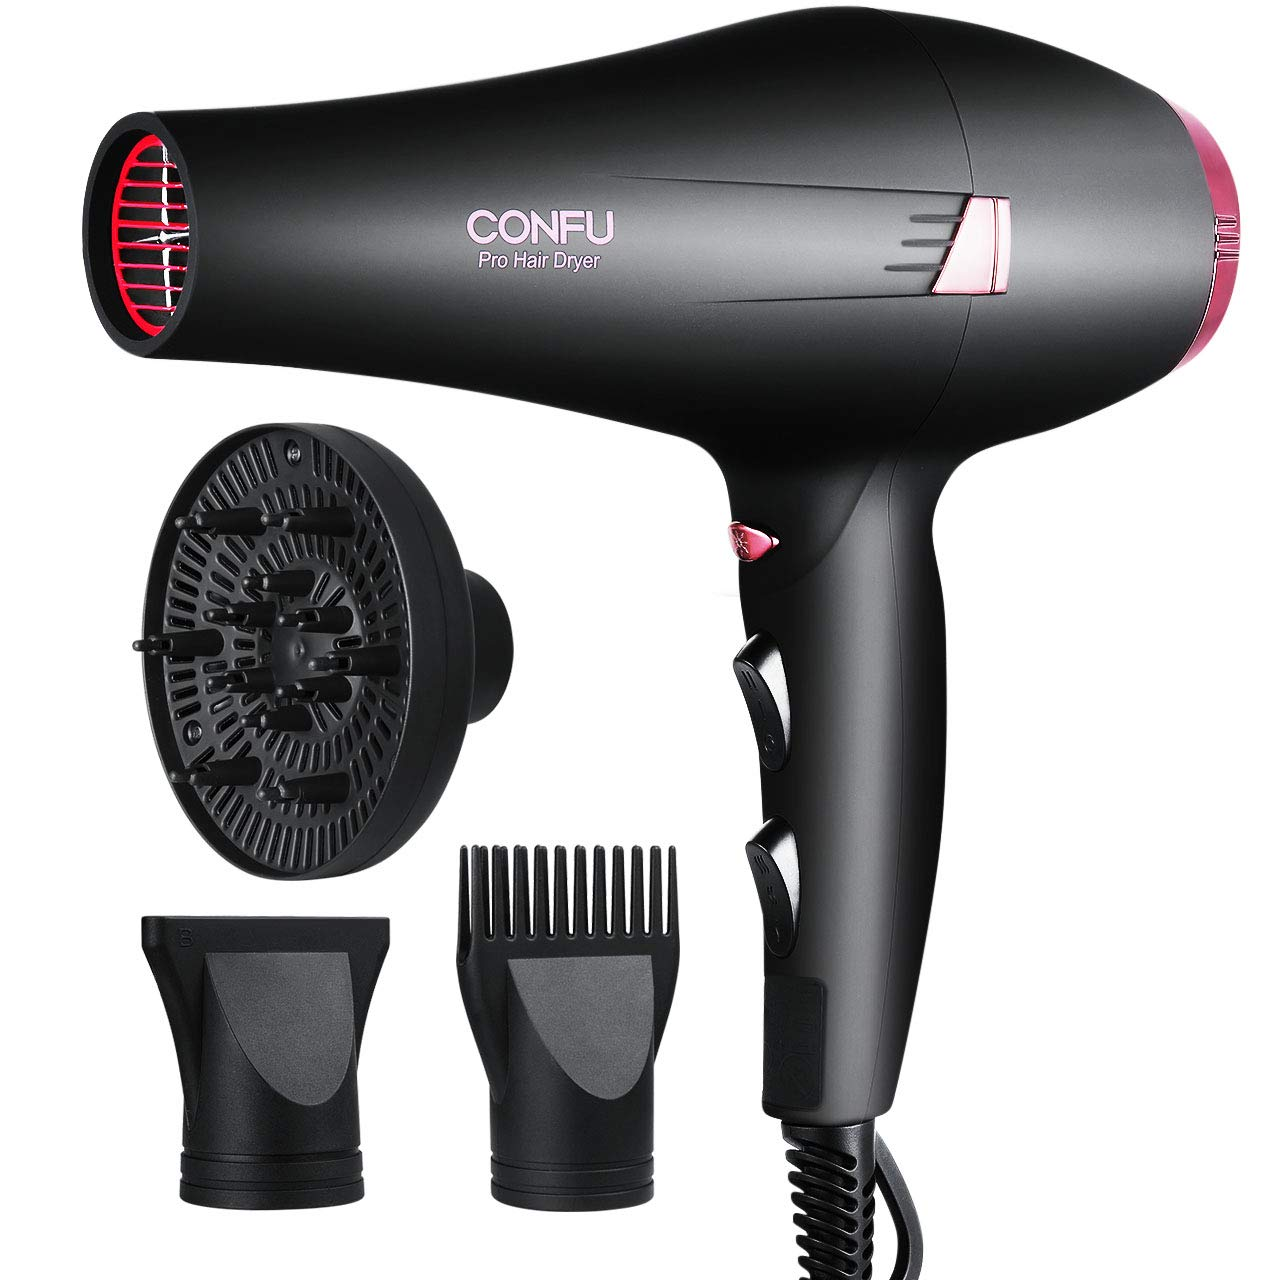 CONFU 1875W Professional Fast Drying Salon Hair Dryer, Infrared Heat Ceramic Ionic Blow Dryer with Concentrator, Diffuser and Comb